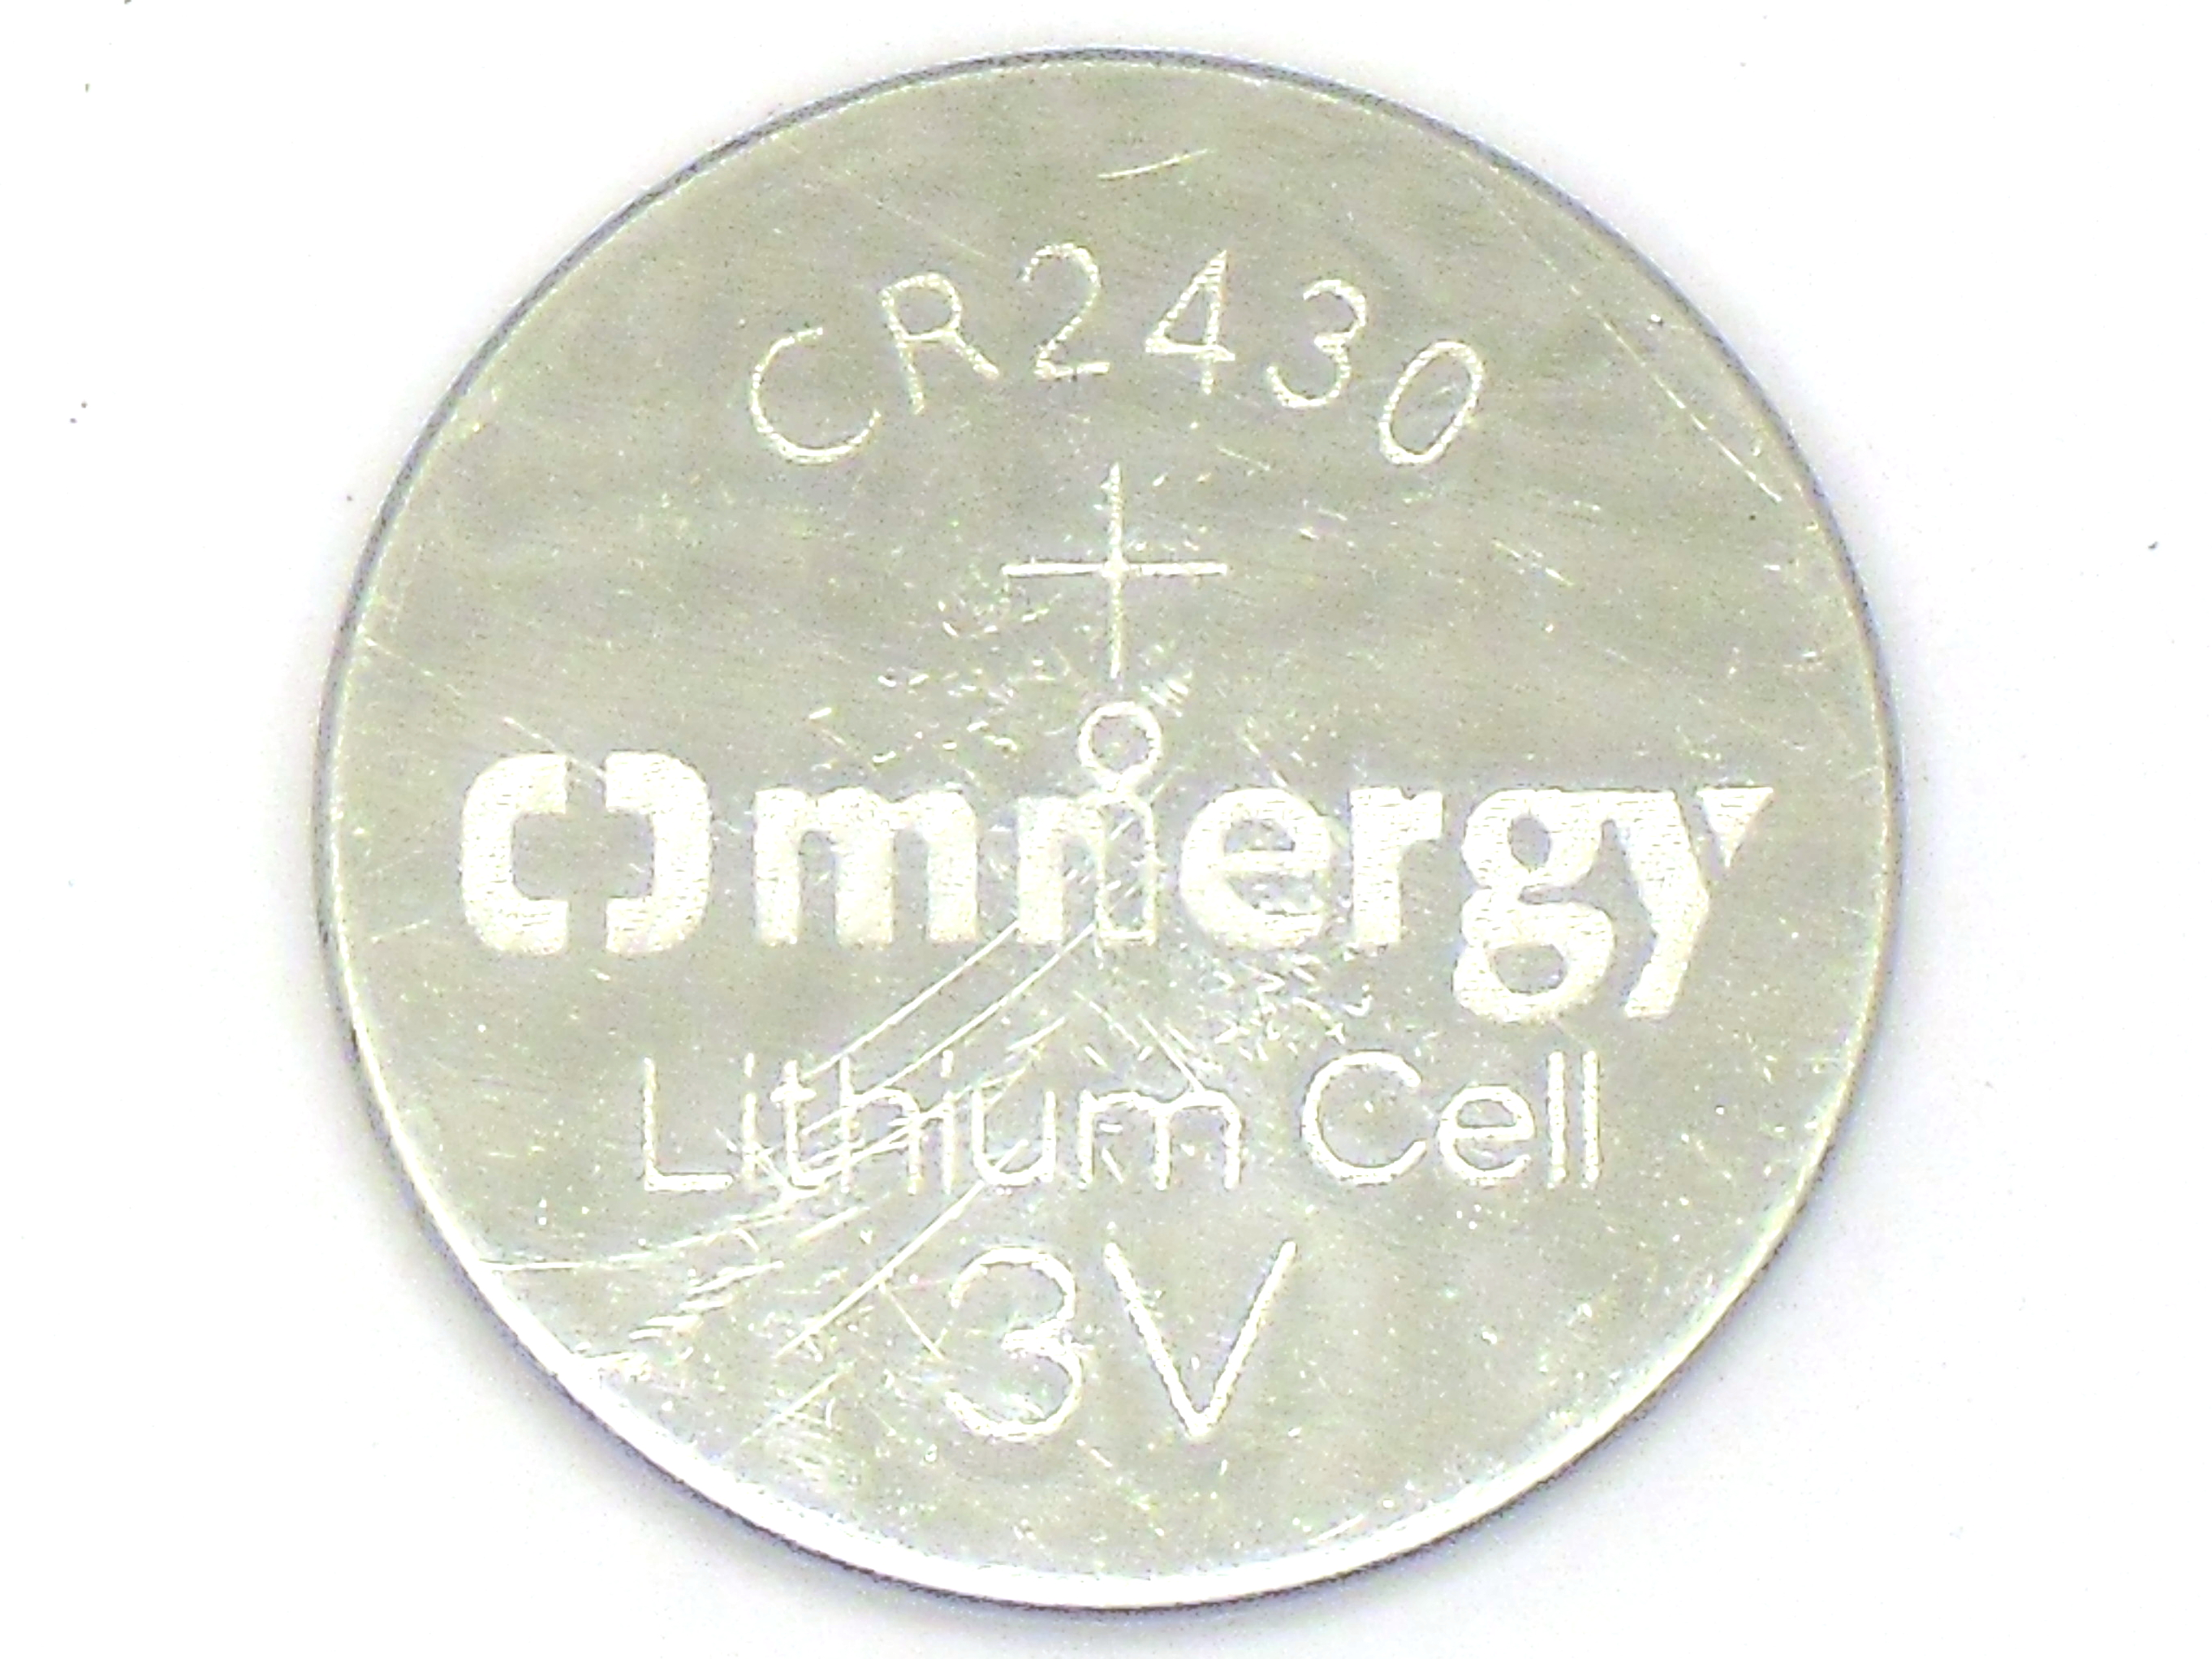 CR2430 Replacement Battery